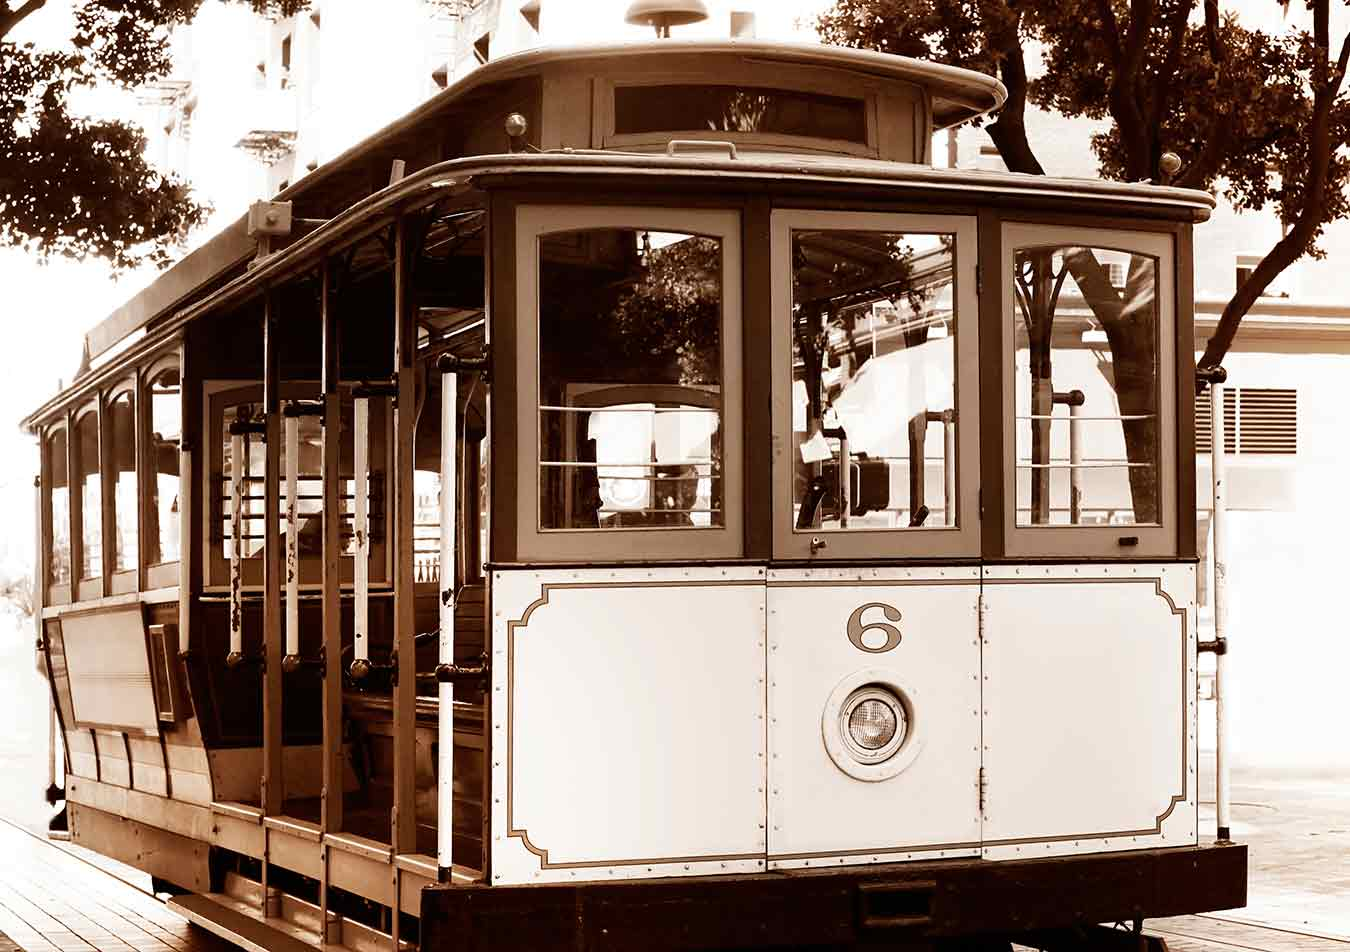 Trolley Streetcar, similar to the one we rode on to get to Lagoon.